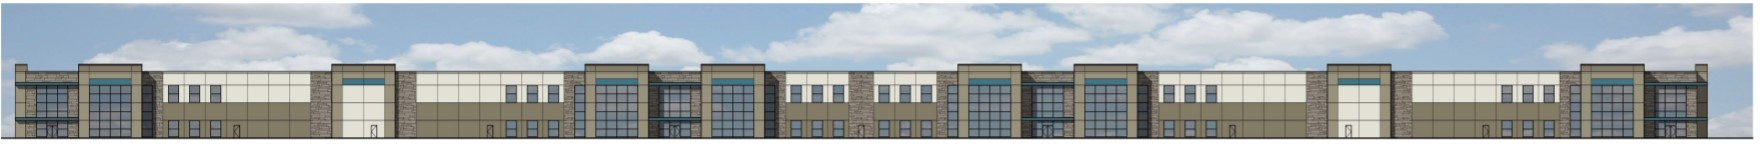 Full Building elevation for the HSA Indy Gateway 7 Project